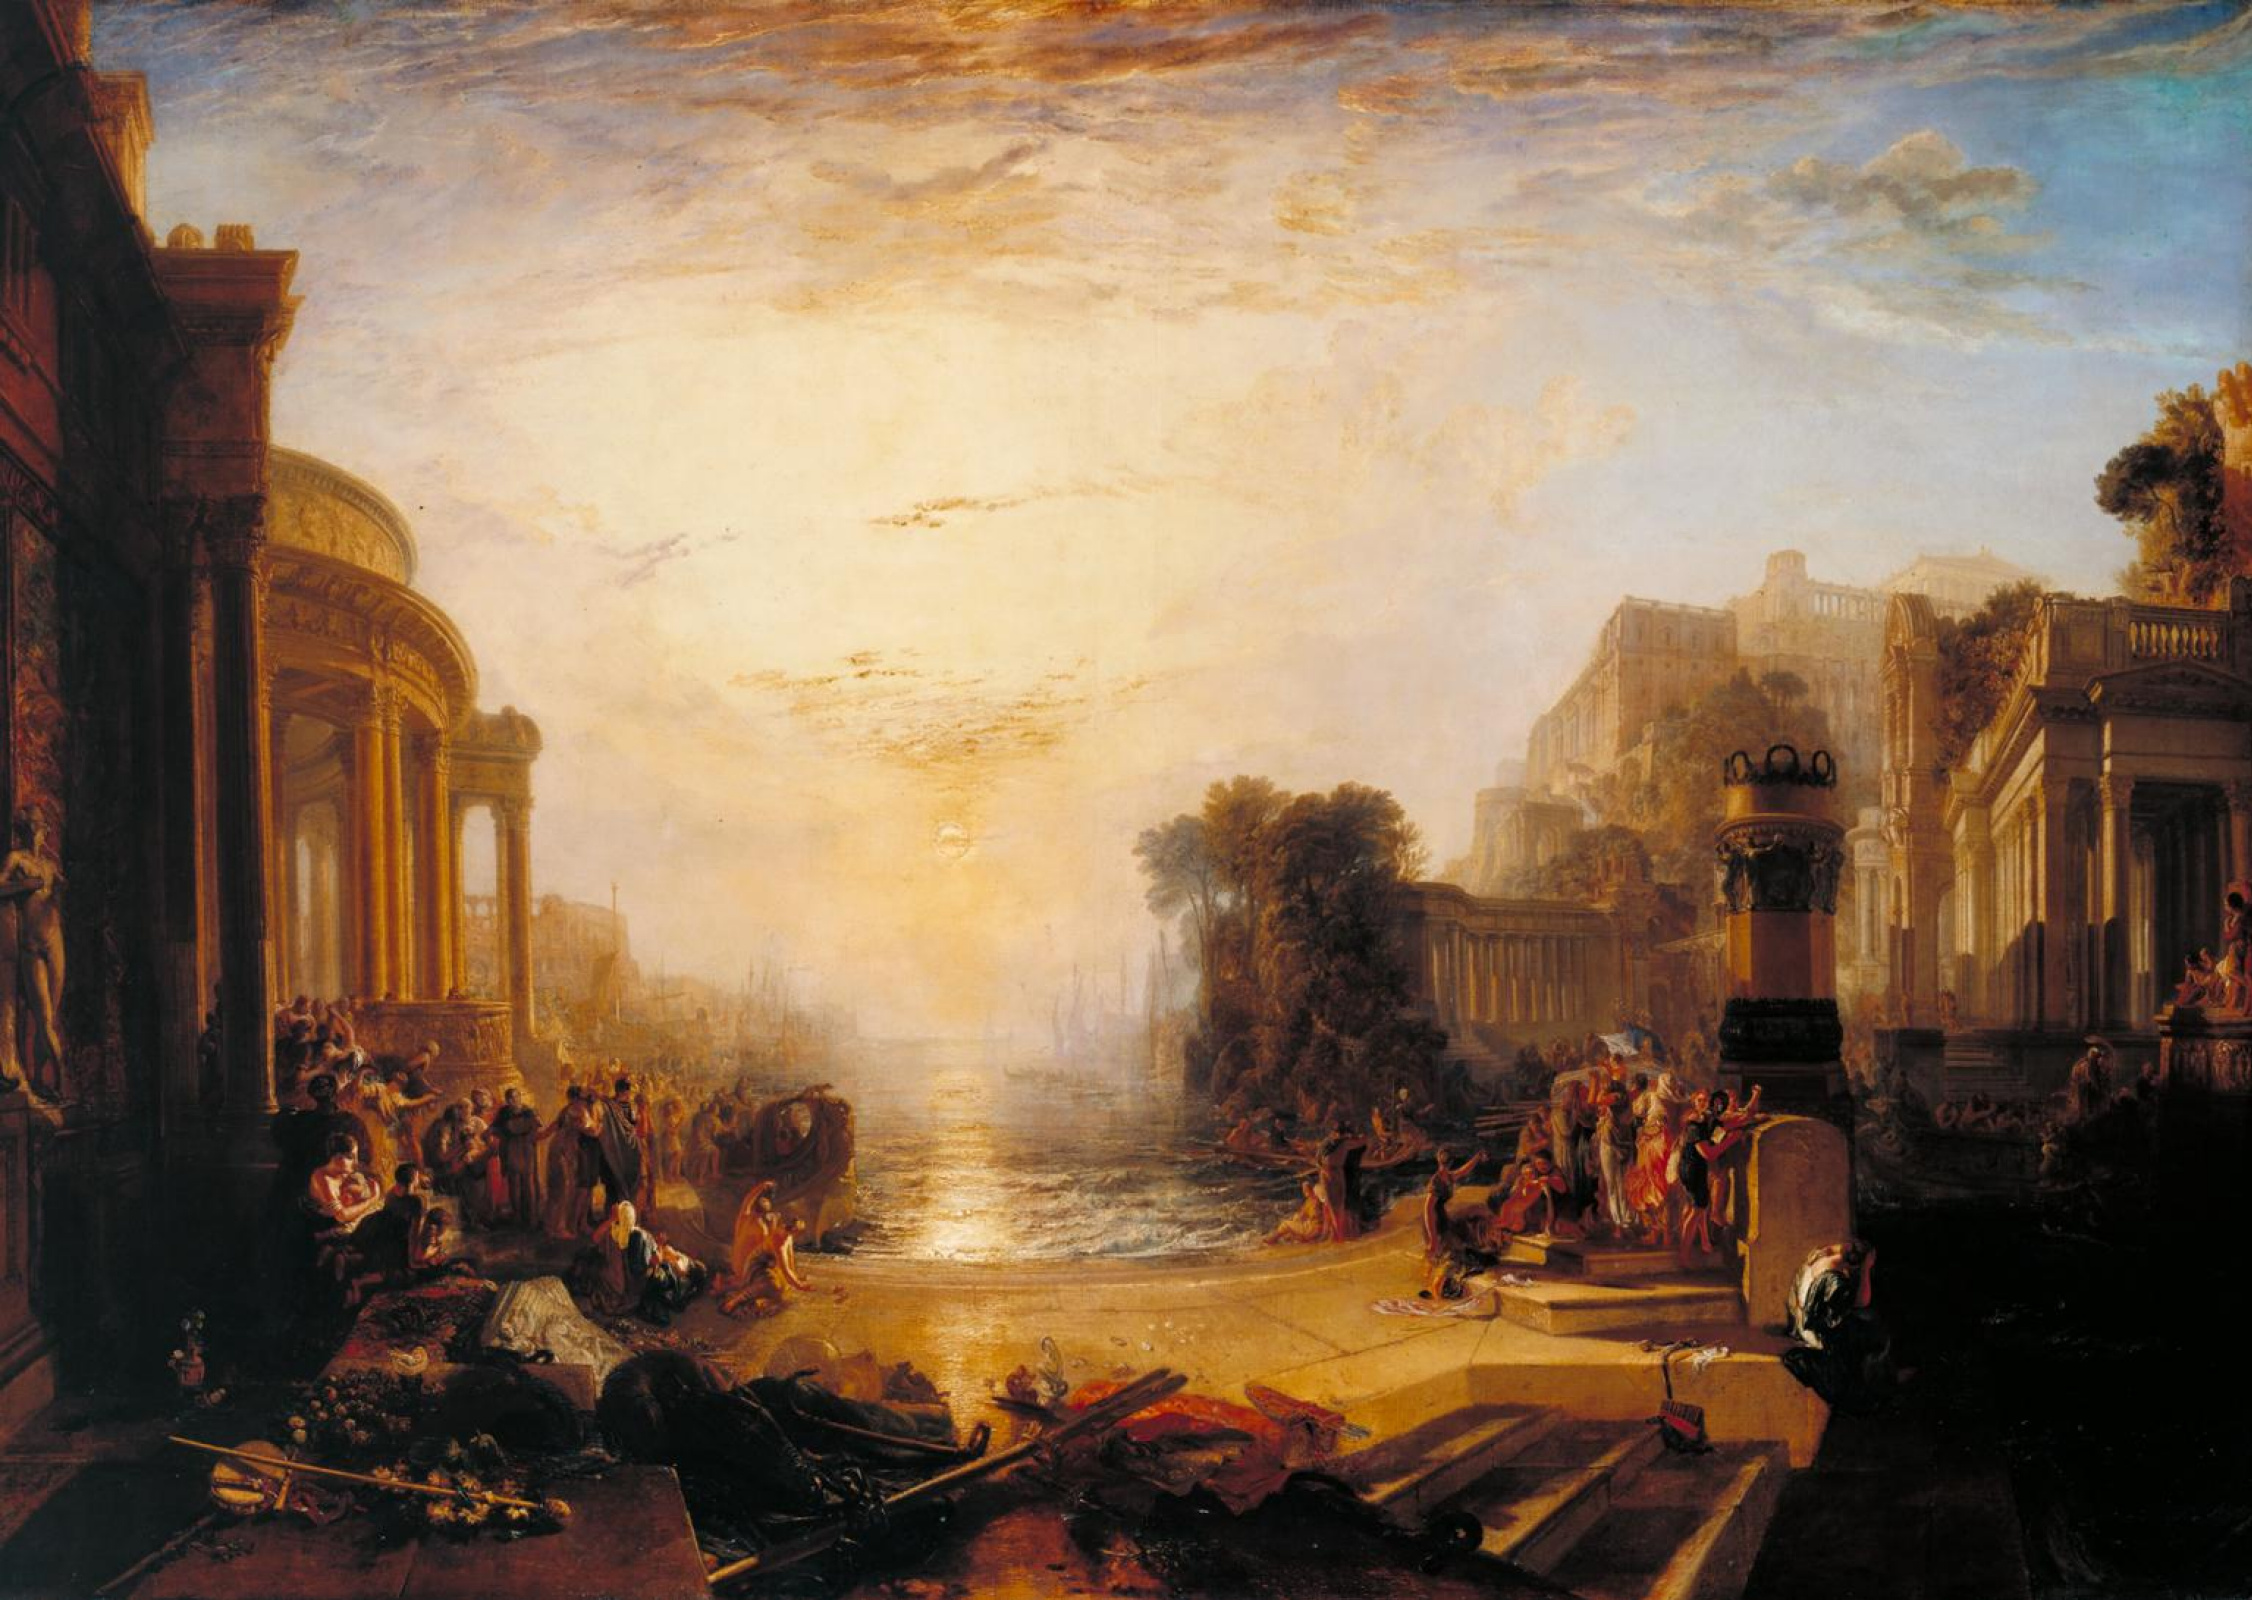 Turner 1817 Le declin de l'Empire carthaginois Tate Gallery